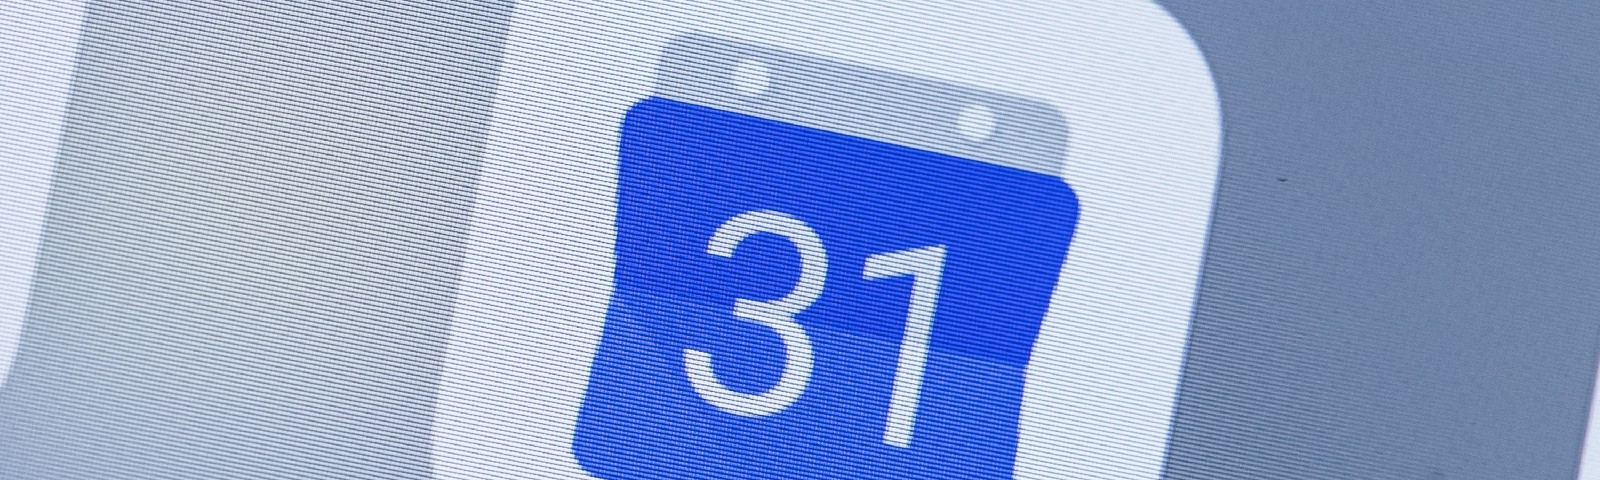 A smart phone with the icons for the Google Calendar app